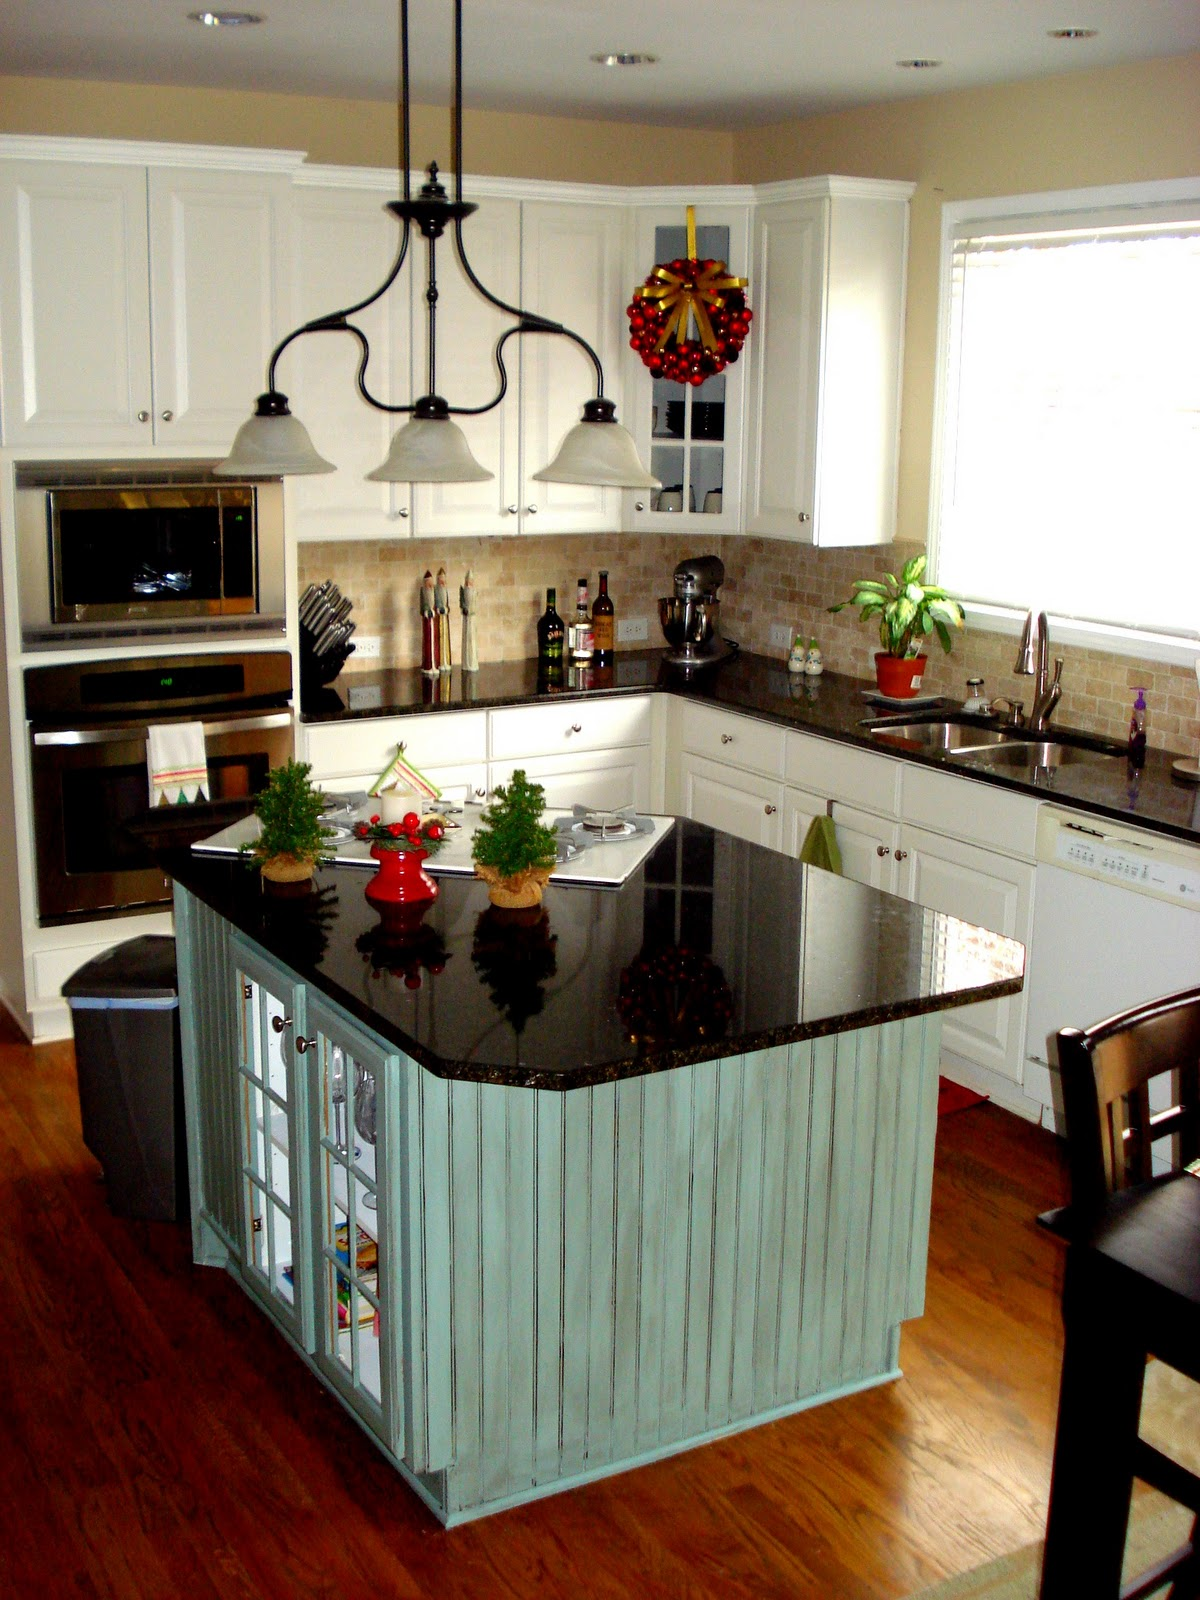 kitchen design ideas for small kitchens island photo - 4